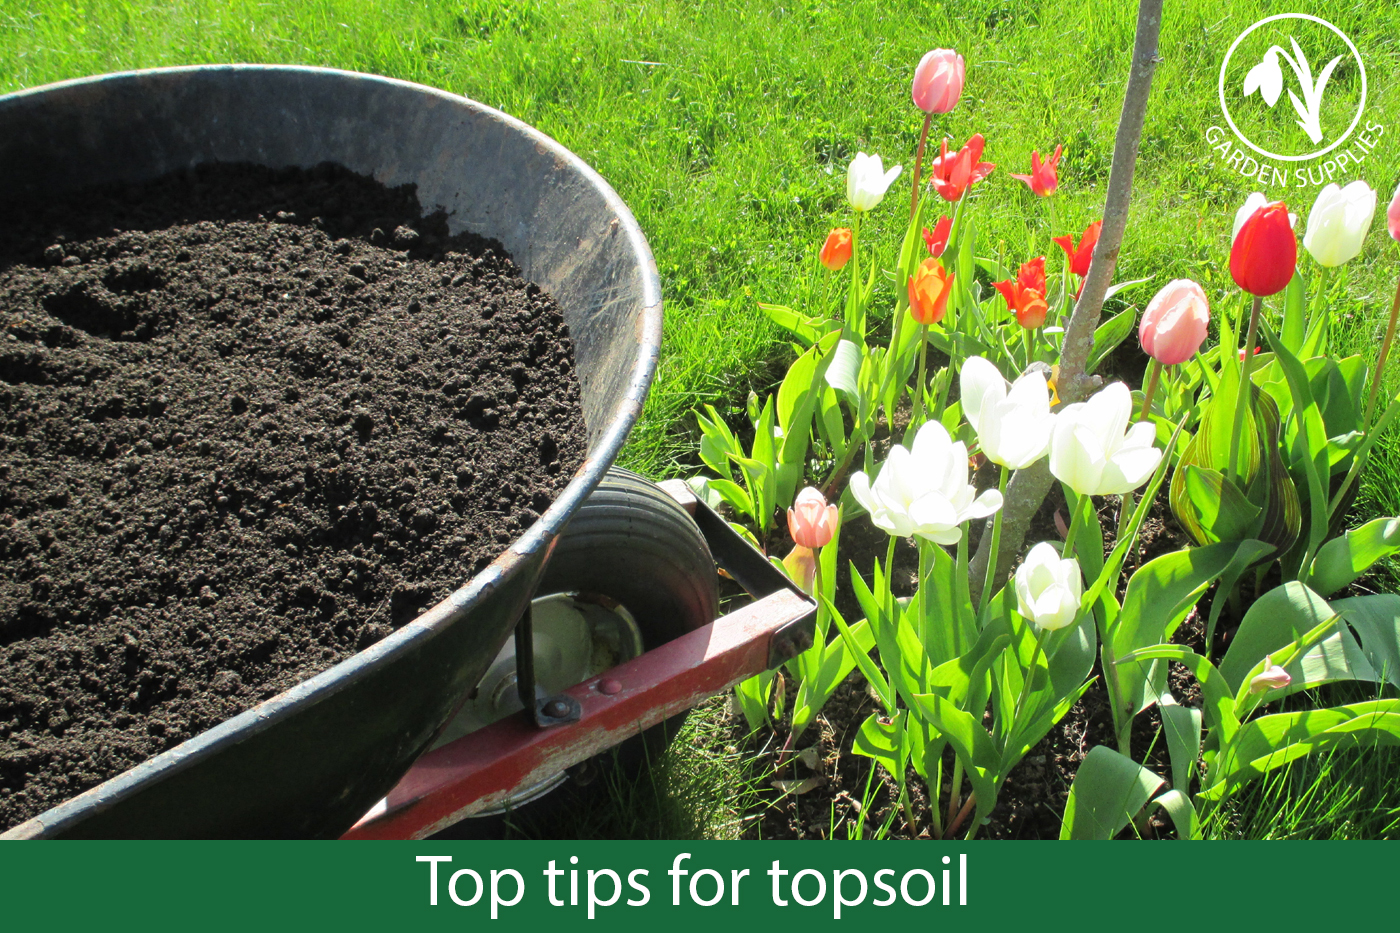 Top tips for topsoil